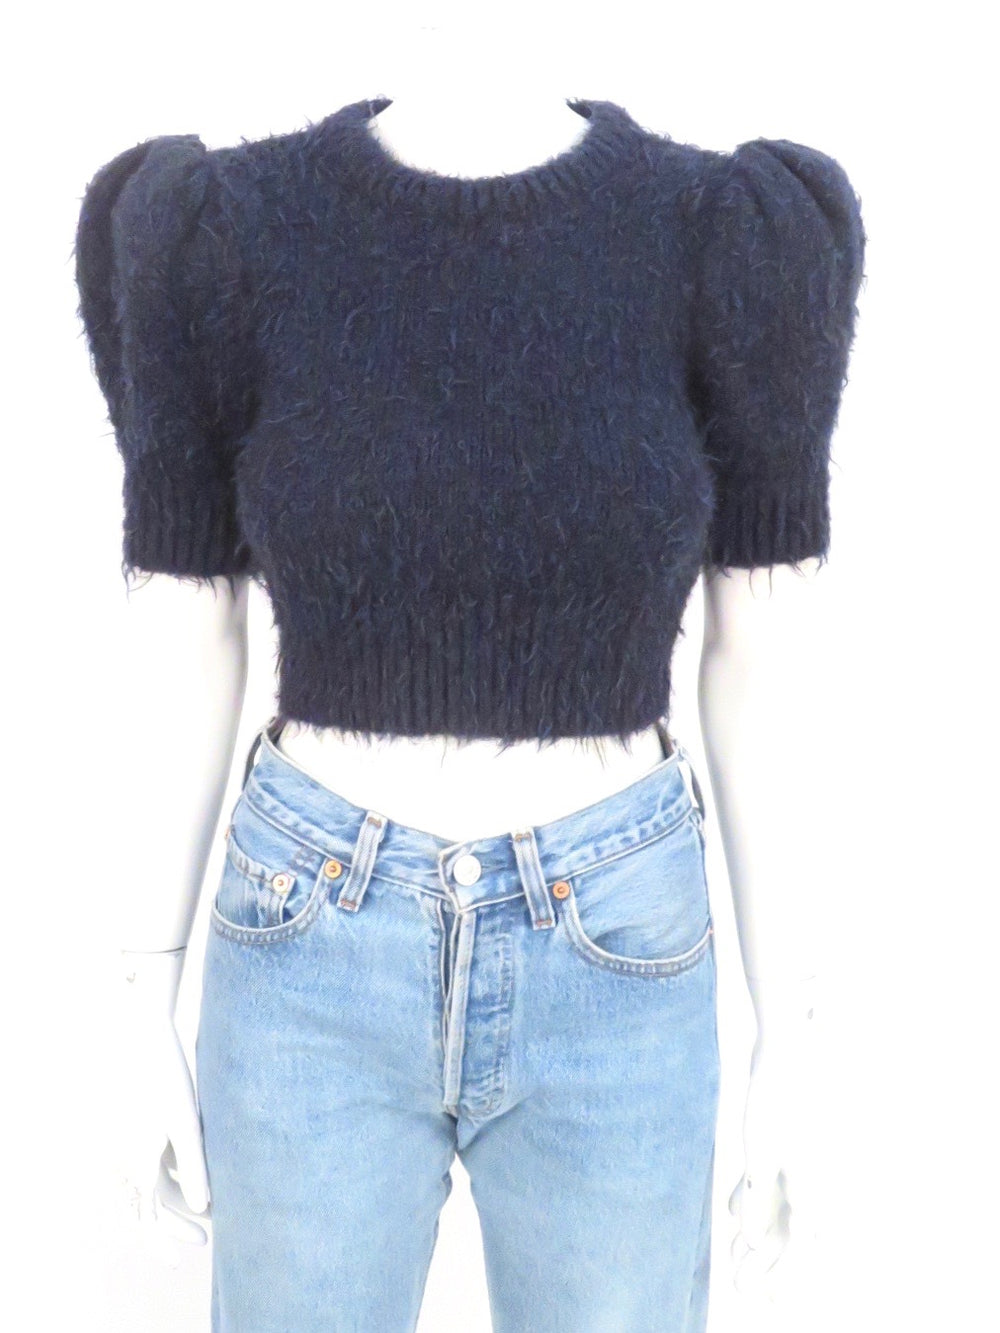 michael kors collection midnight blue plush knit crop top. features short puff sleeves and pulled yarn textured finish. unlined. *please note: this is a spring 2020 sample item*